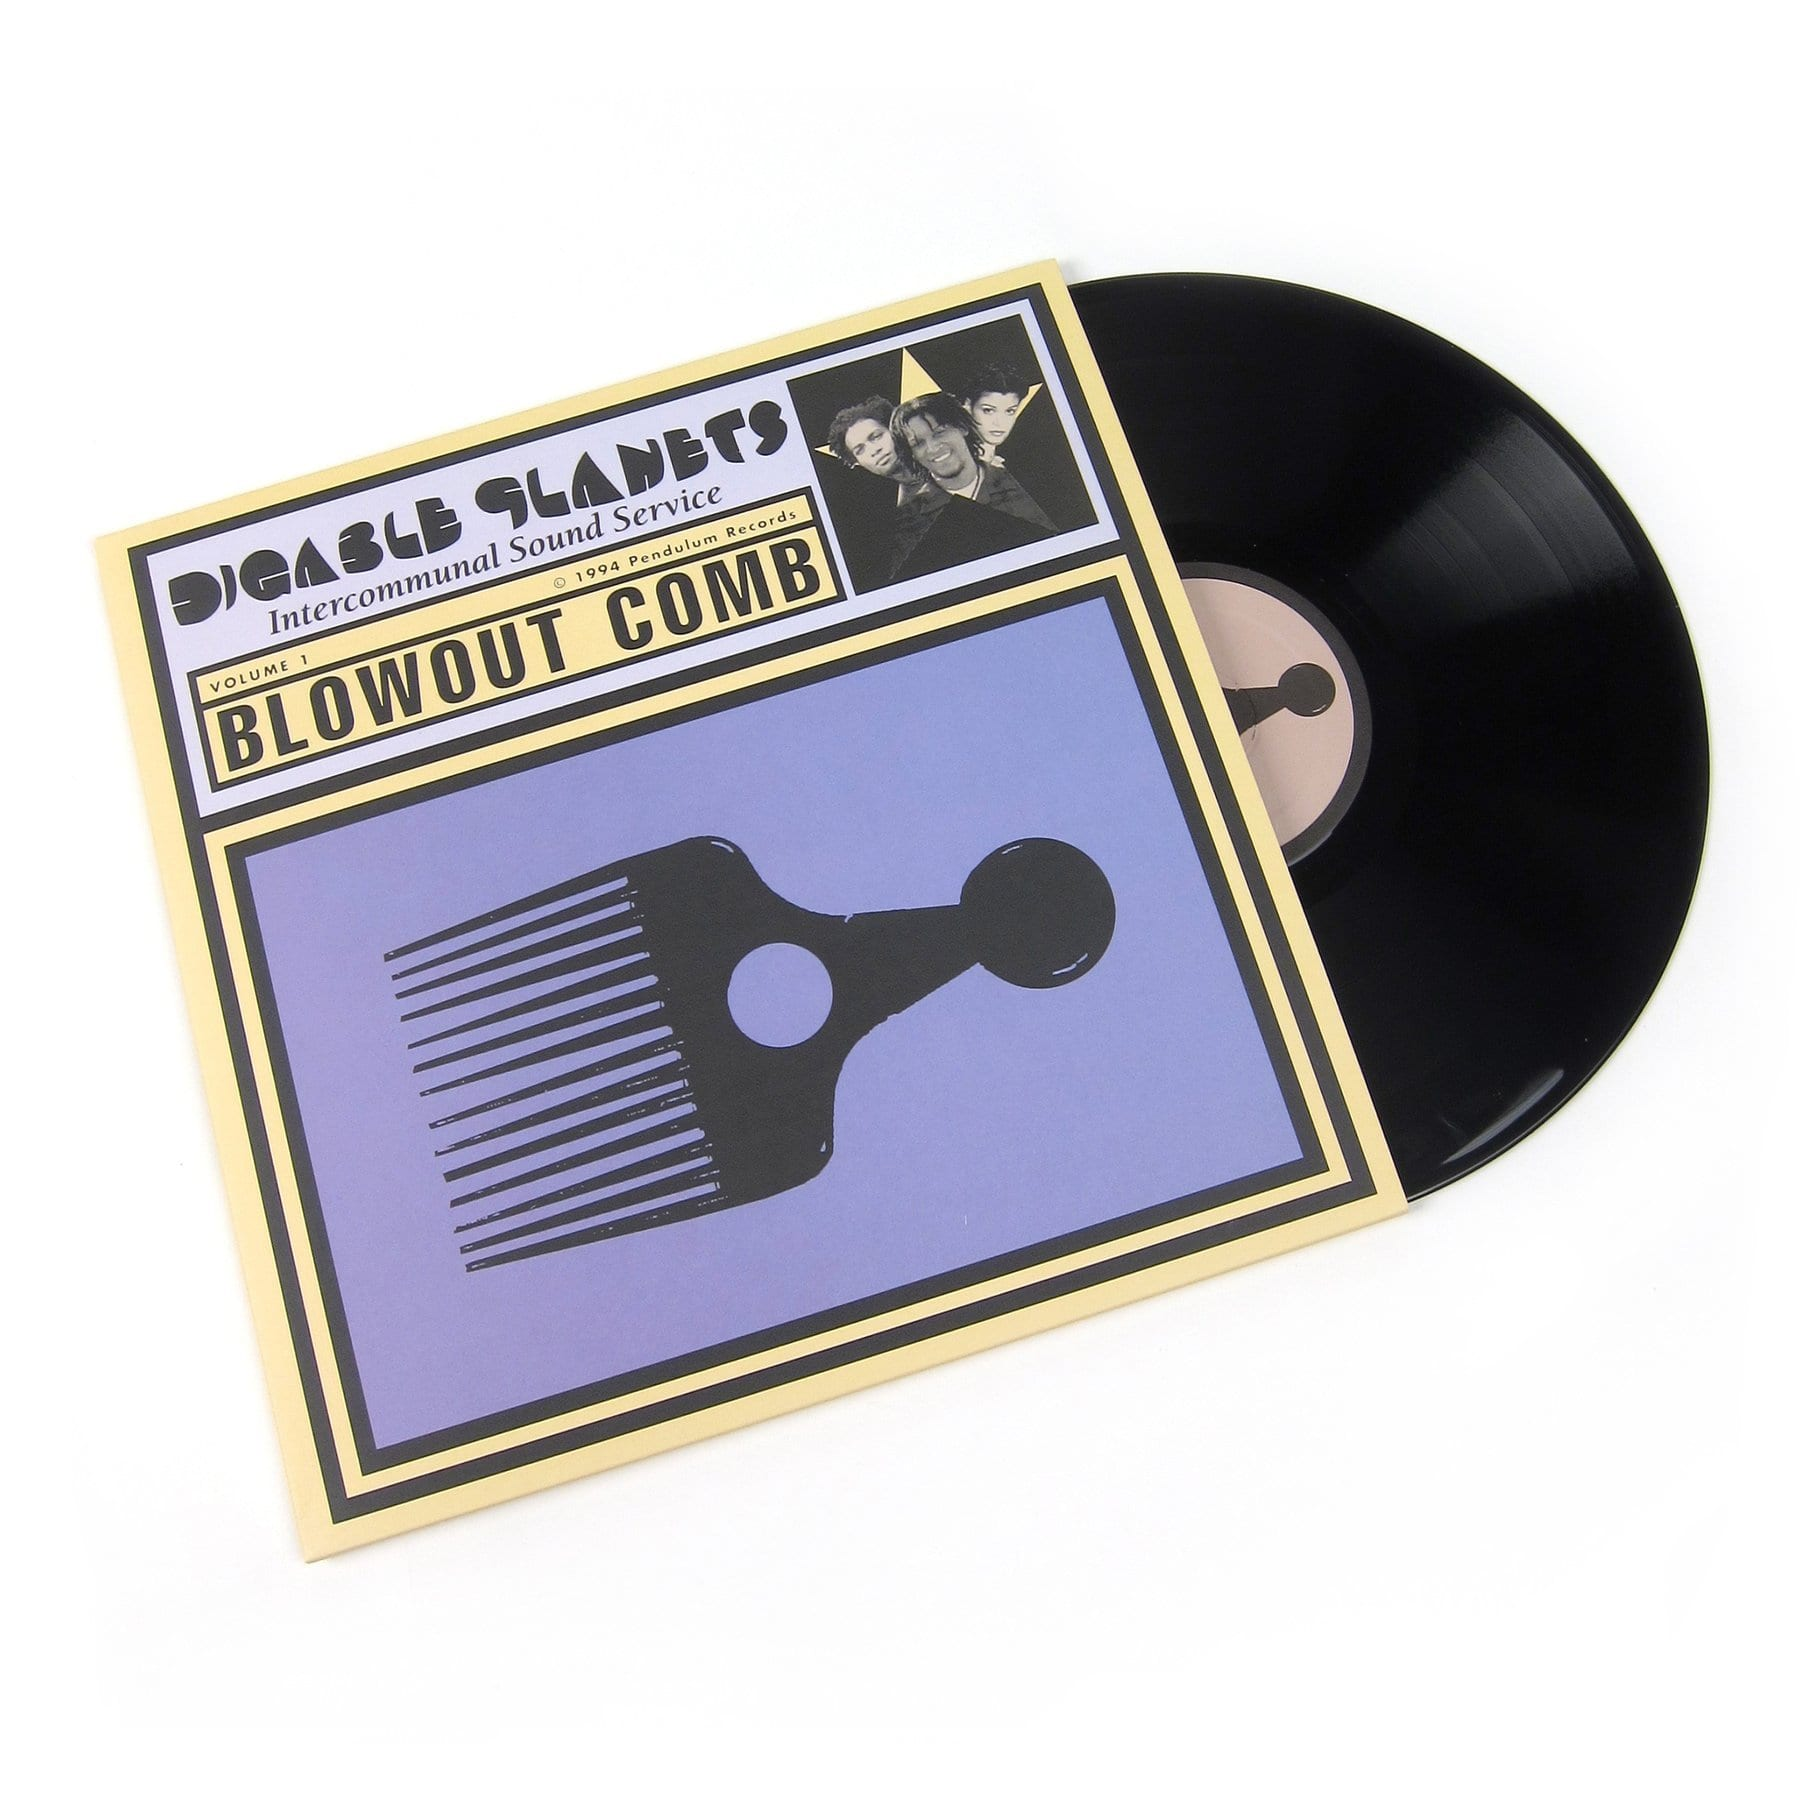 Digable Planets - Blowout Comb [2LP] - Urban Vinyl | Records, Headphones, and more.